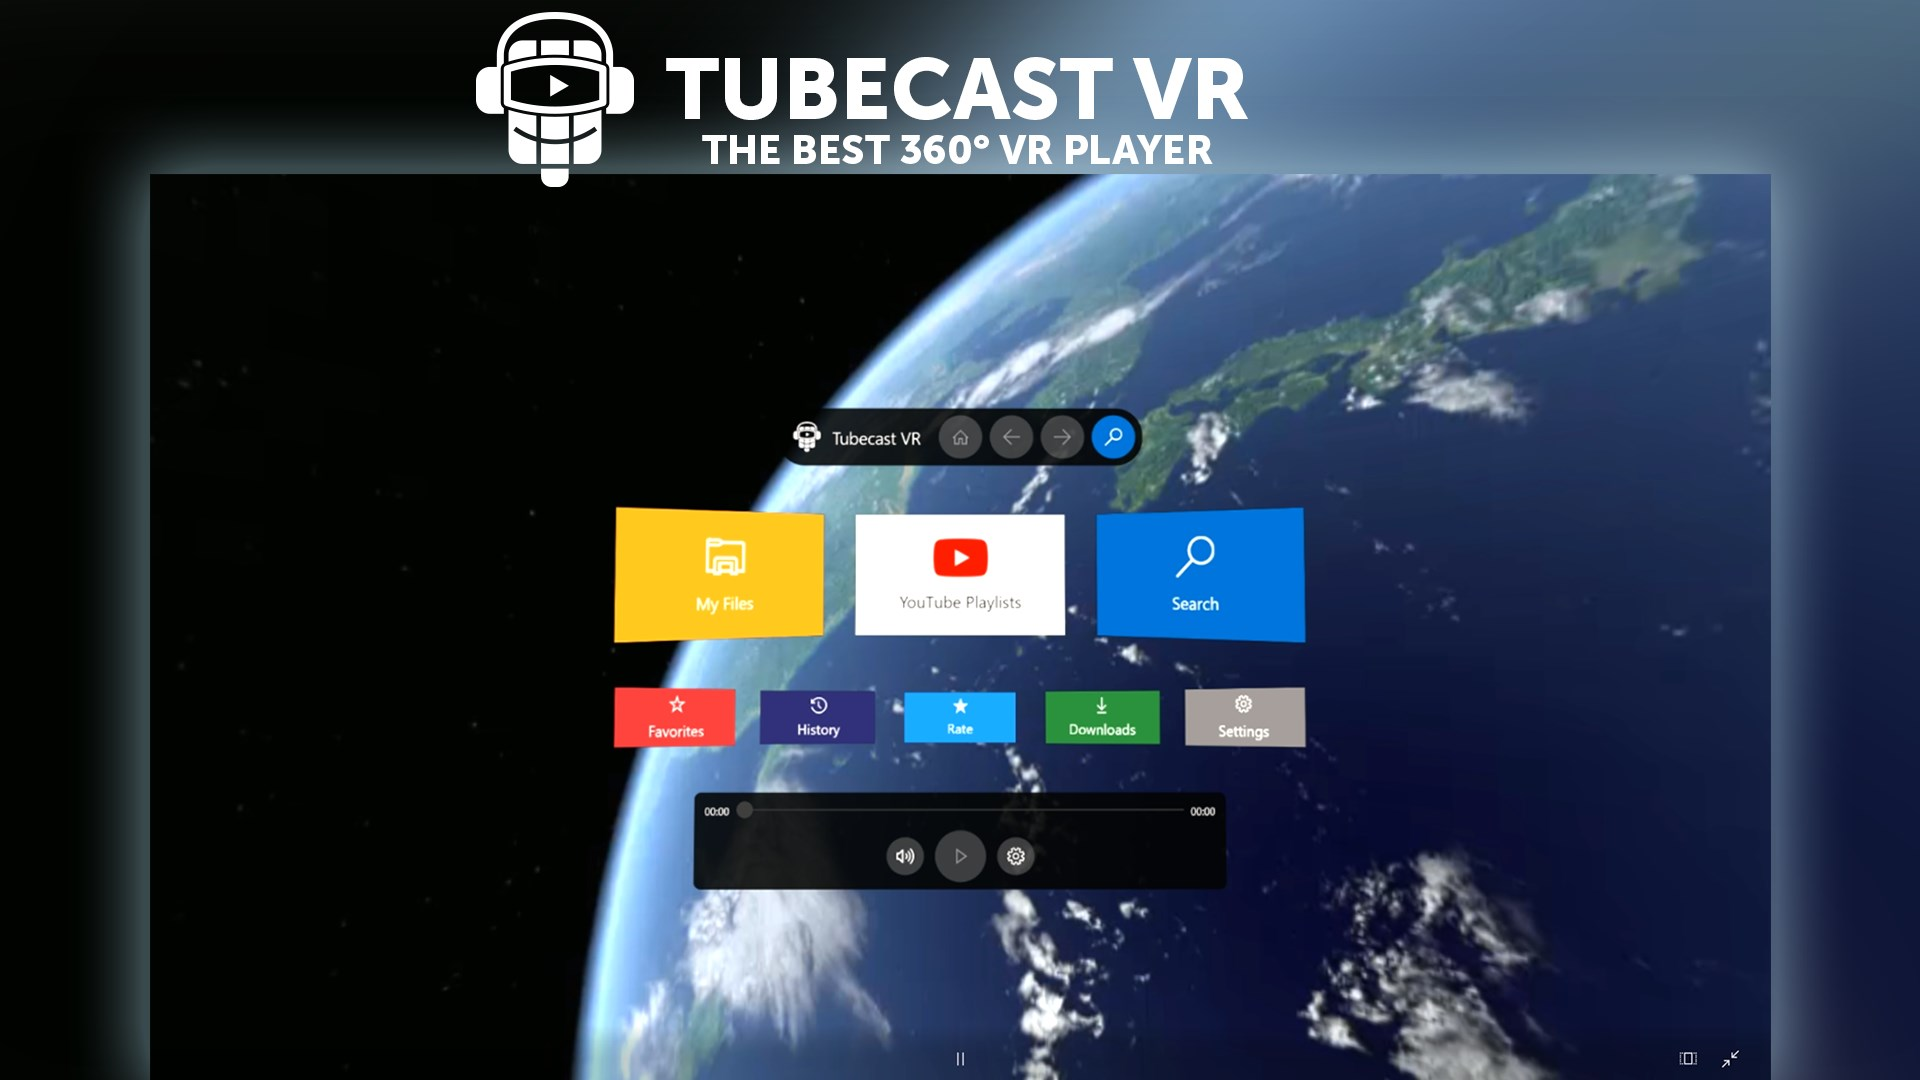 TubeCast VR brings immersive 3D YouTube to Windows Mixed